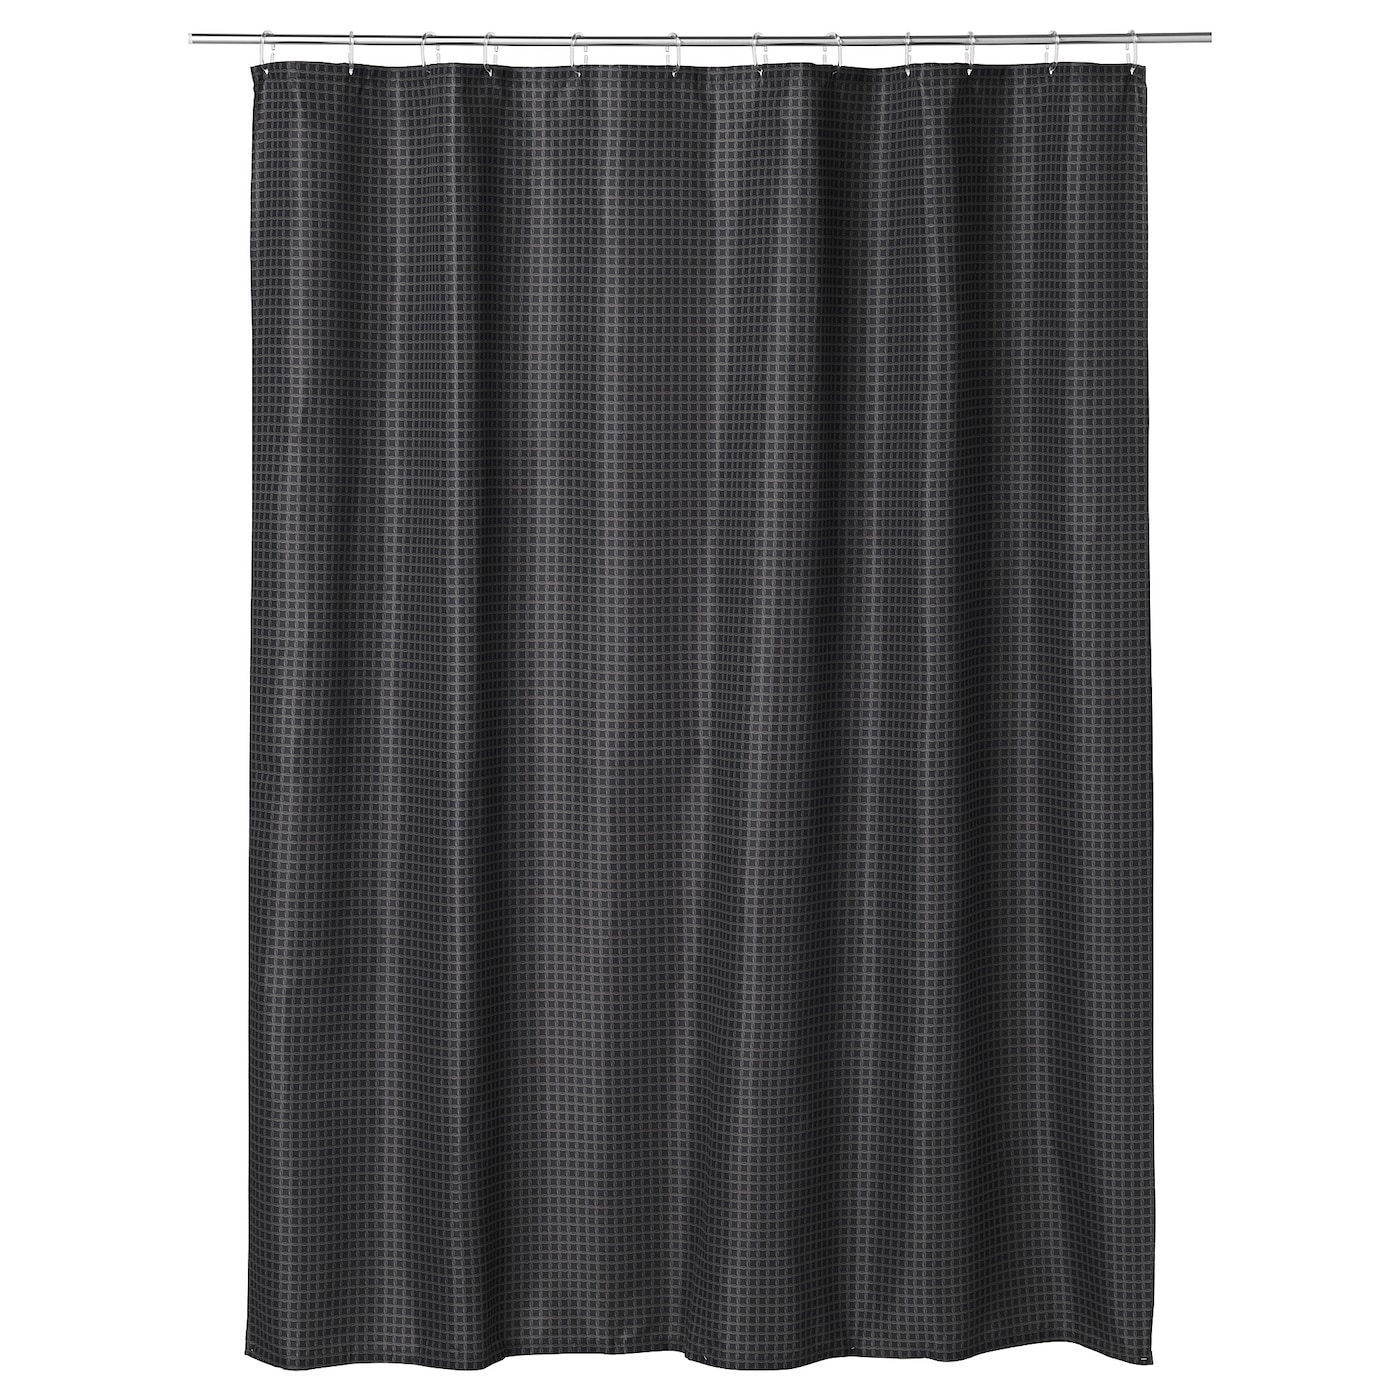 IKEA SAXLVEN Shower Curtain Densely Woven Polyester Fabric With Water Repellent Coating